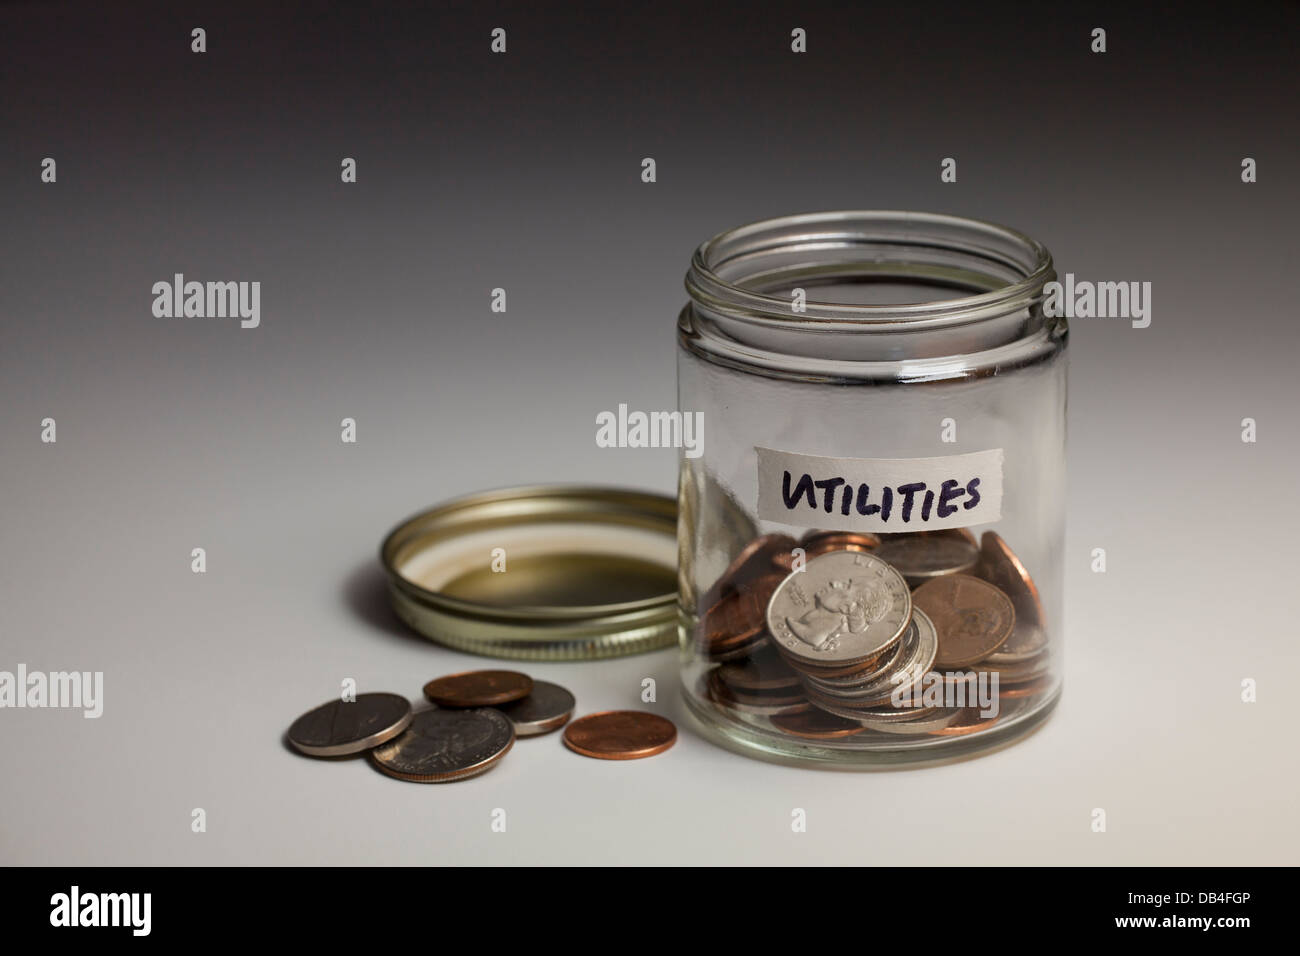 Coins in glass jar saved for utilities expenses - USA - Stock Image